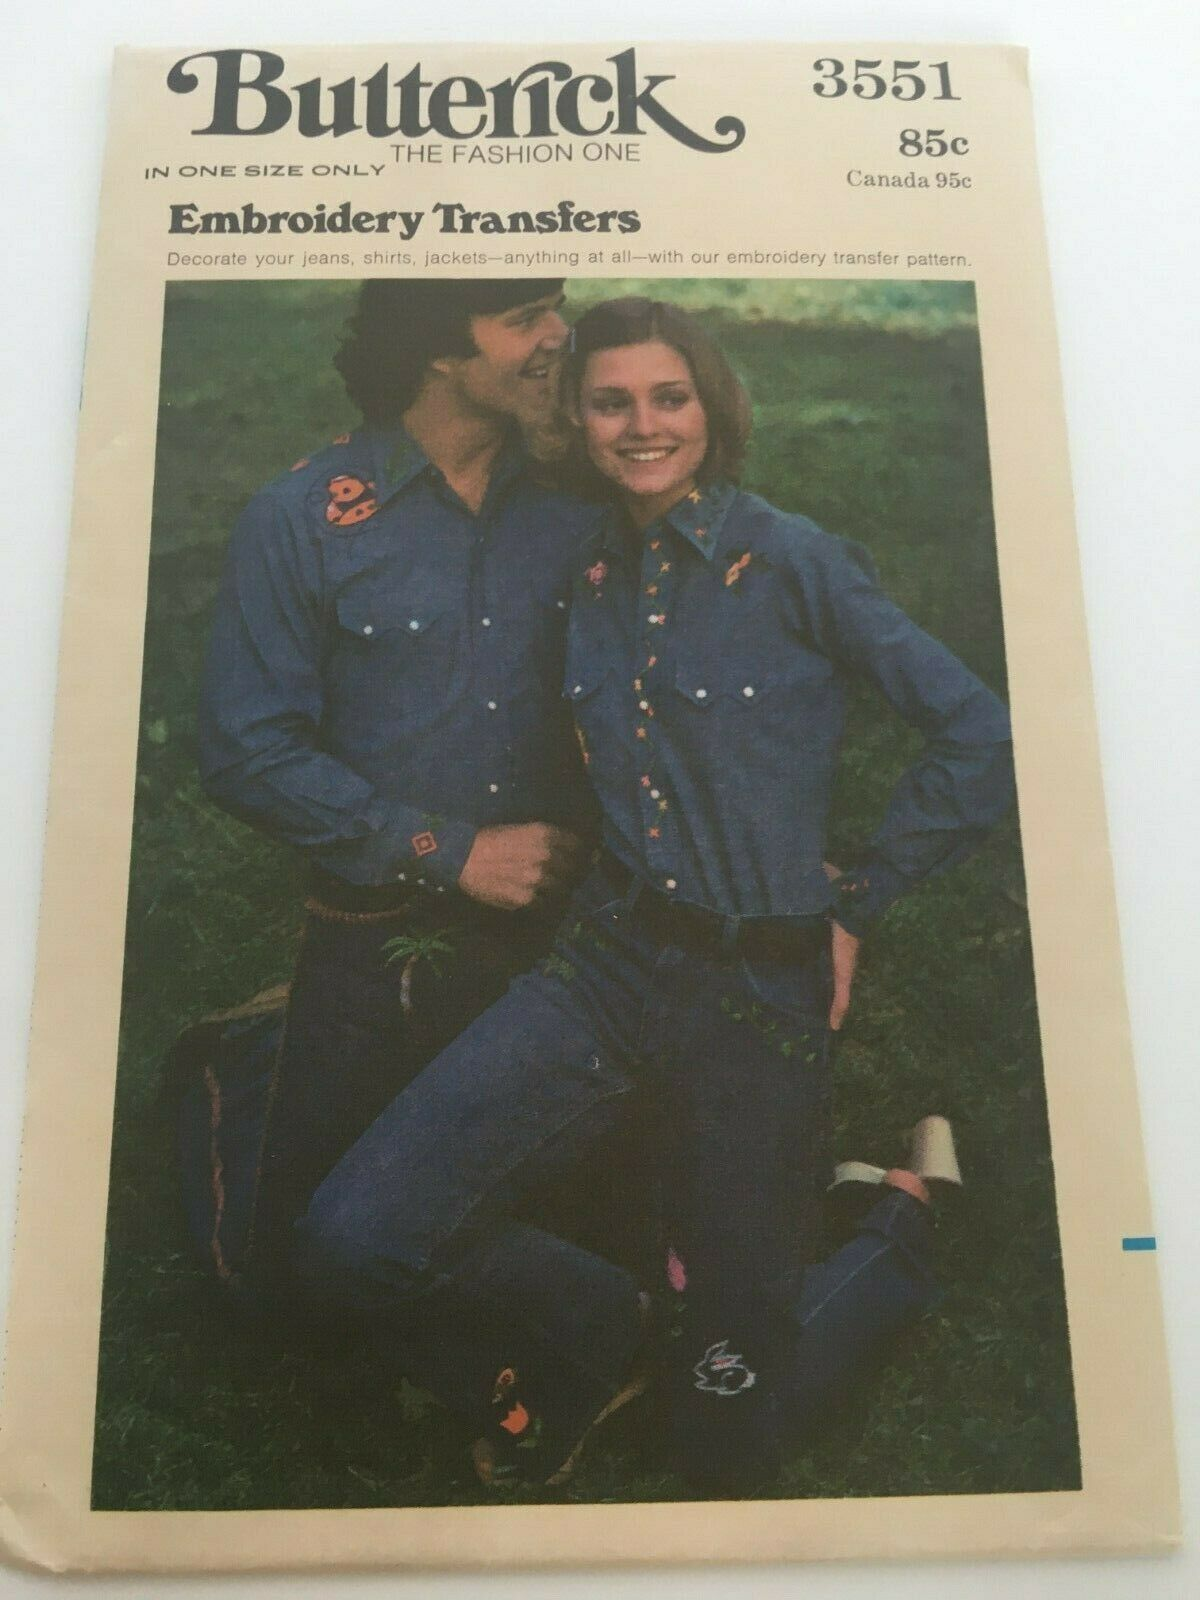 Butterick Embroidery Transfers Pattern 3551 Decorate Jeans Shirts Jacket 1970s - $3.99